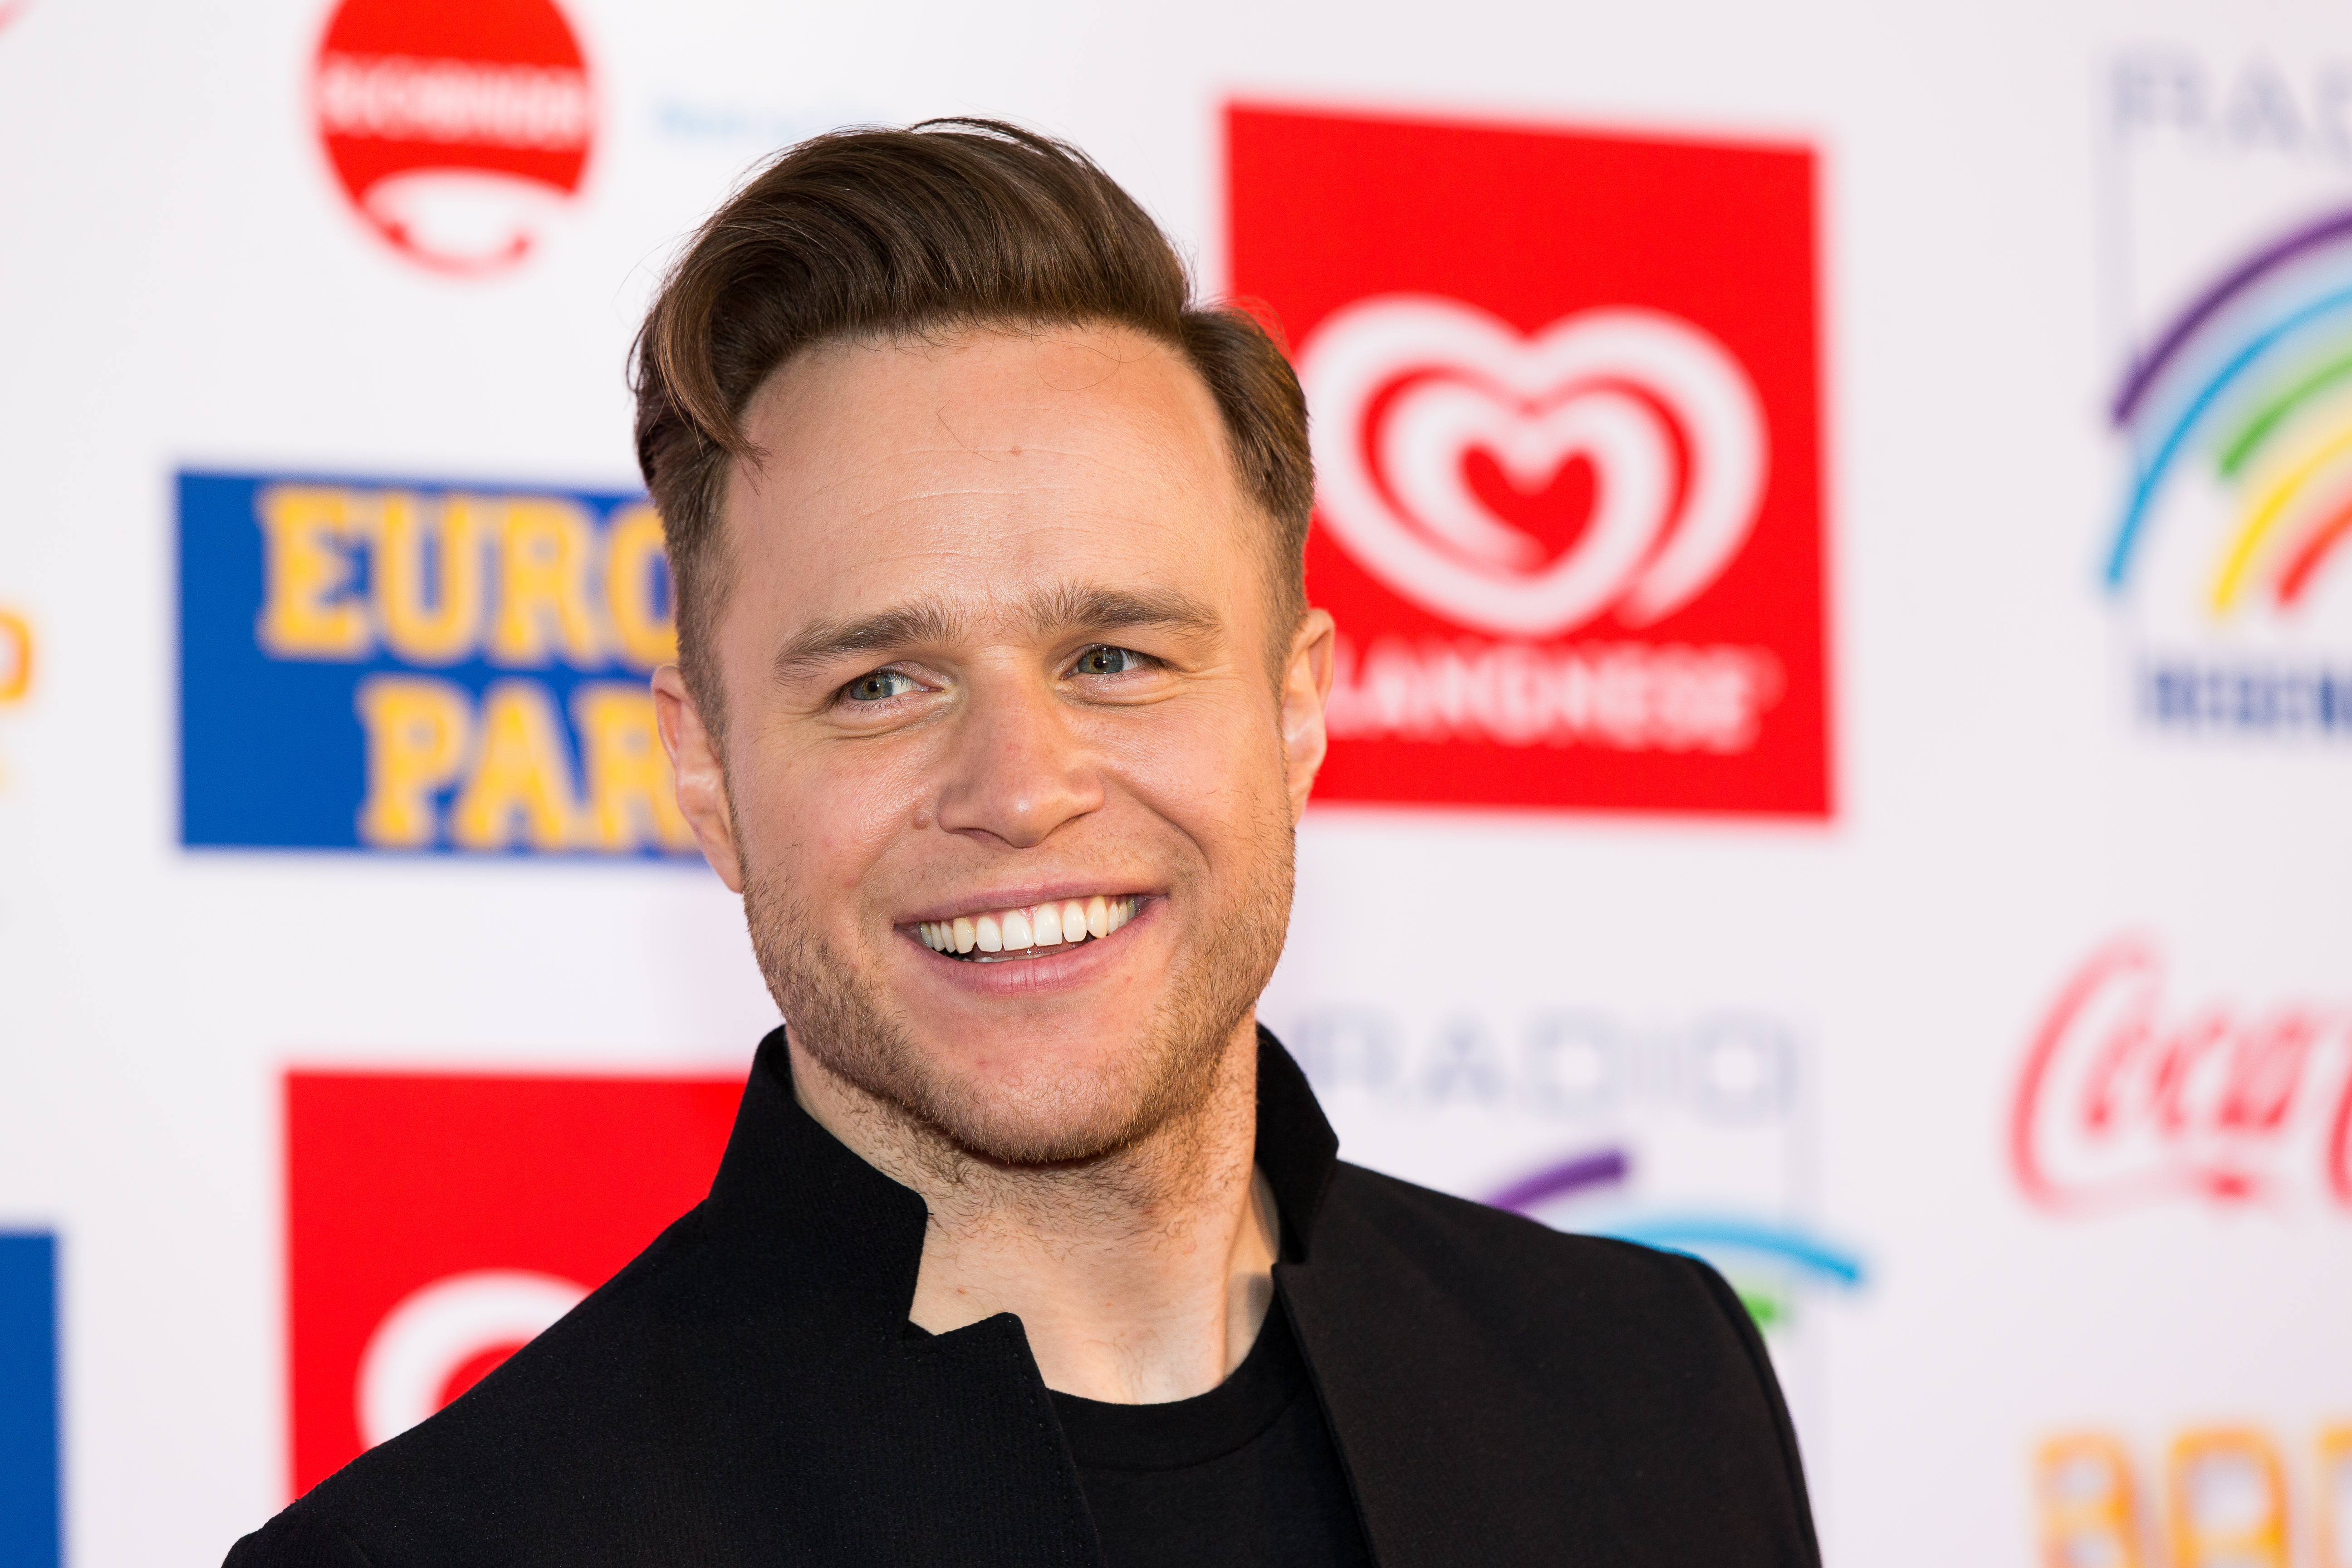 The 34-year old son of father Pete Murs and mother Vicki-Lynn Murs Olly Murs in 2018 photo. Olly Murs earned a  million dollar salary - leaving the net worth at 2 million in 2018